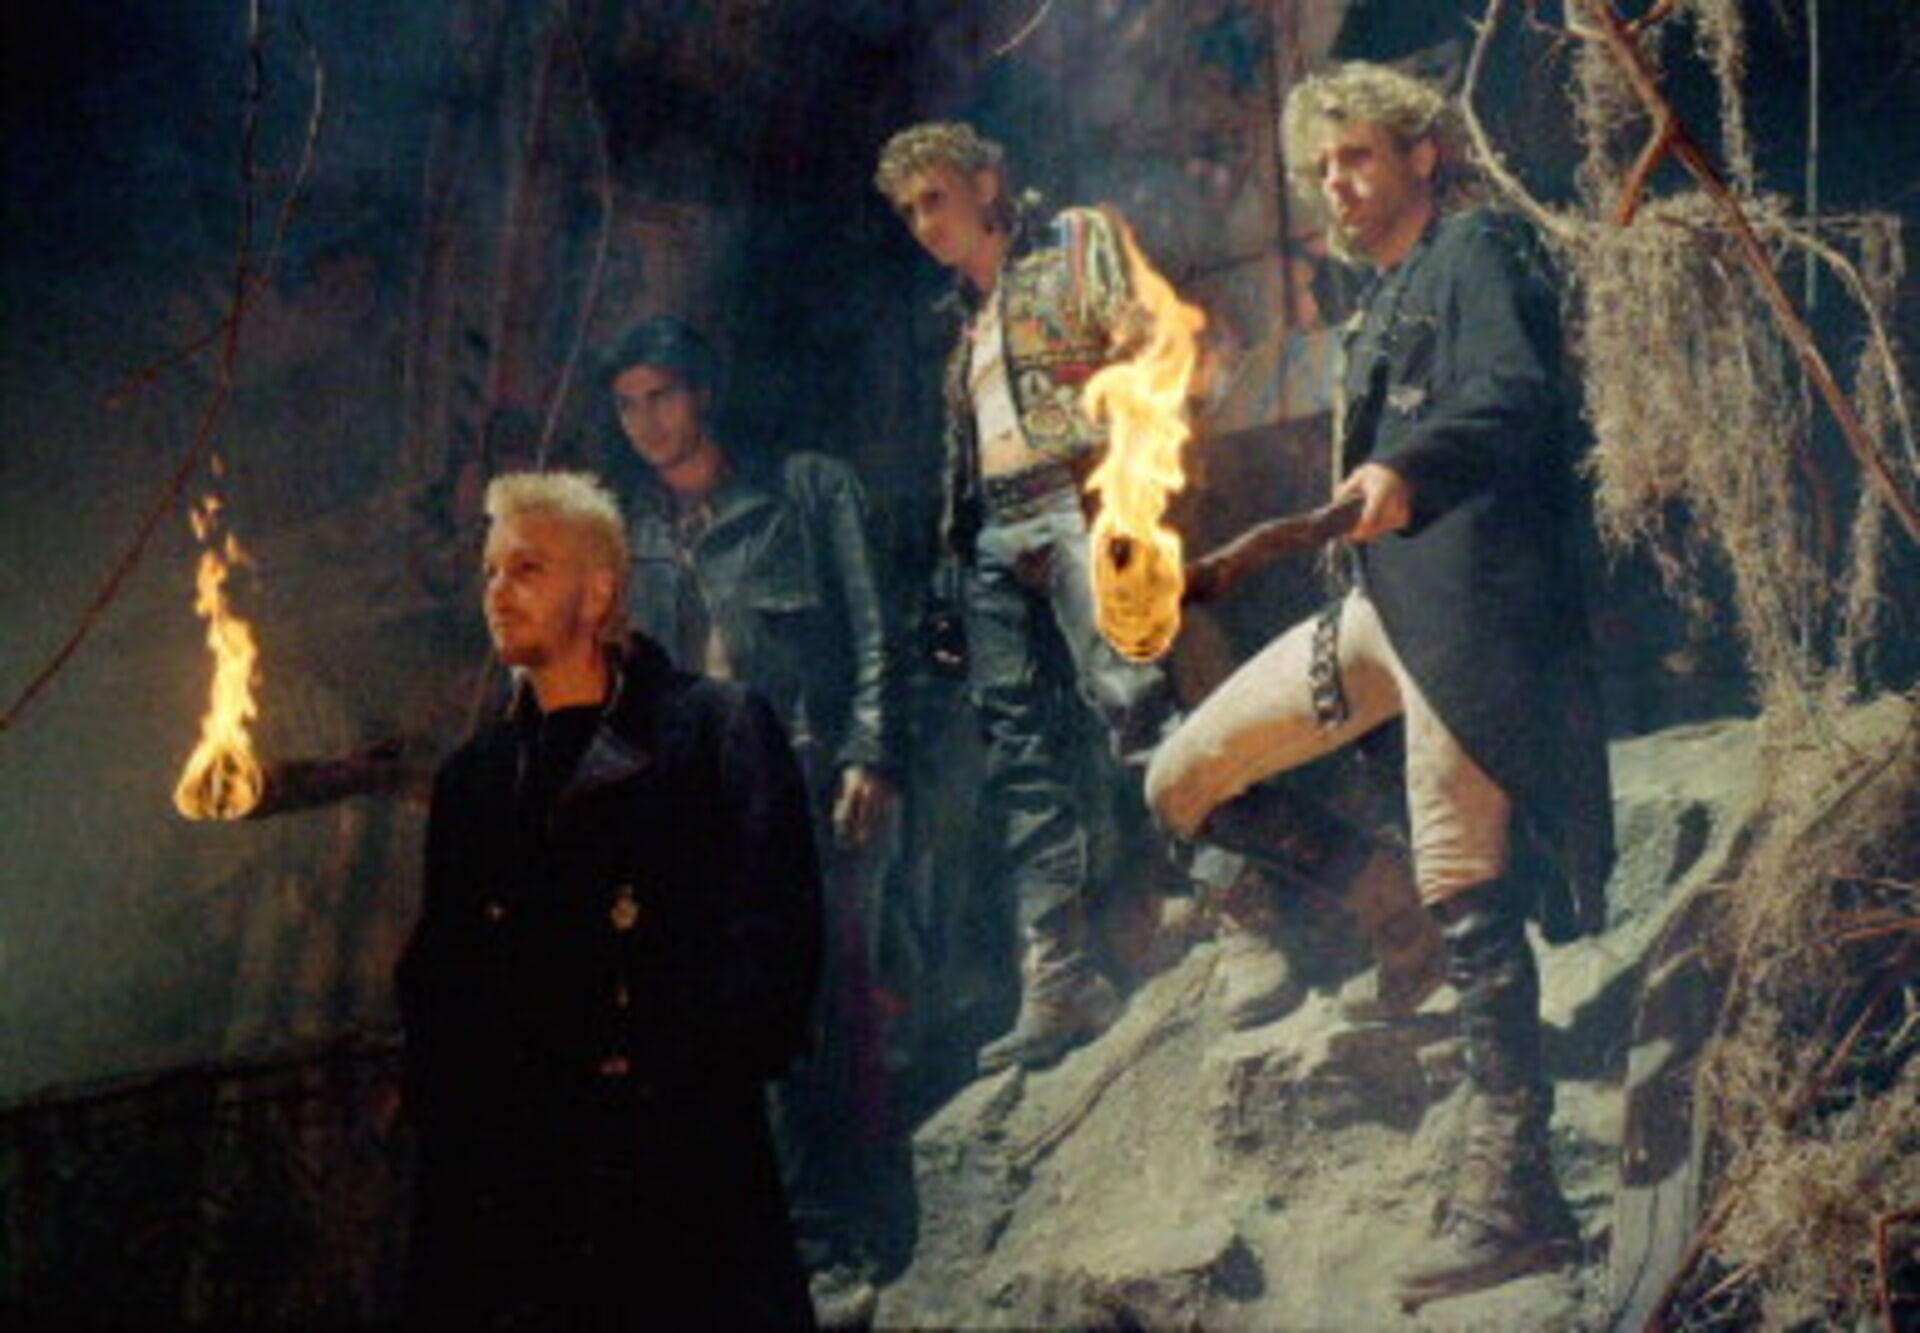 The Lost Boys - Image 4